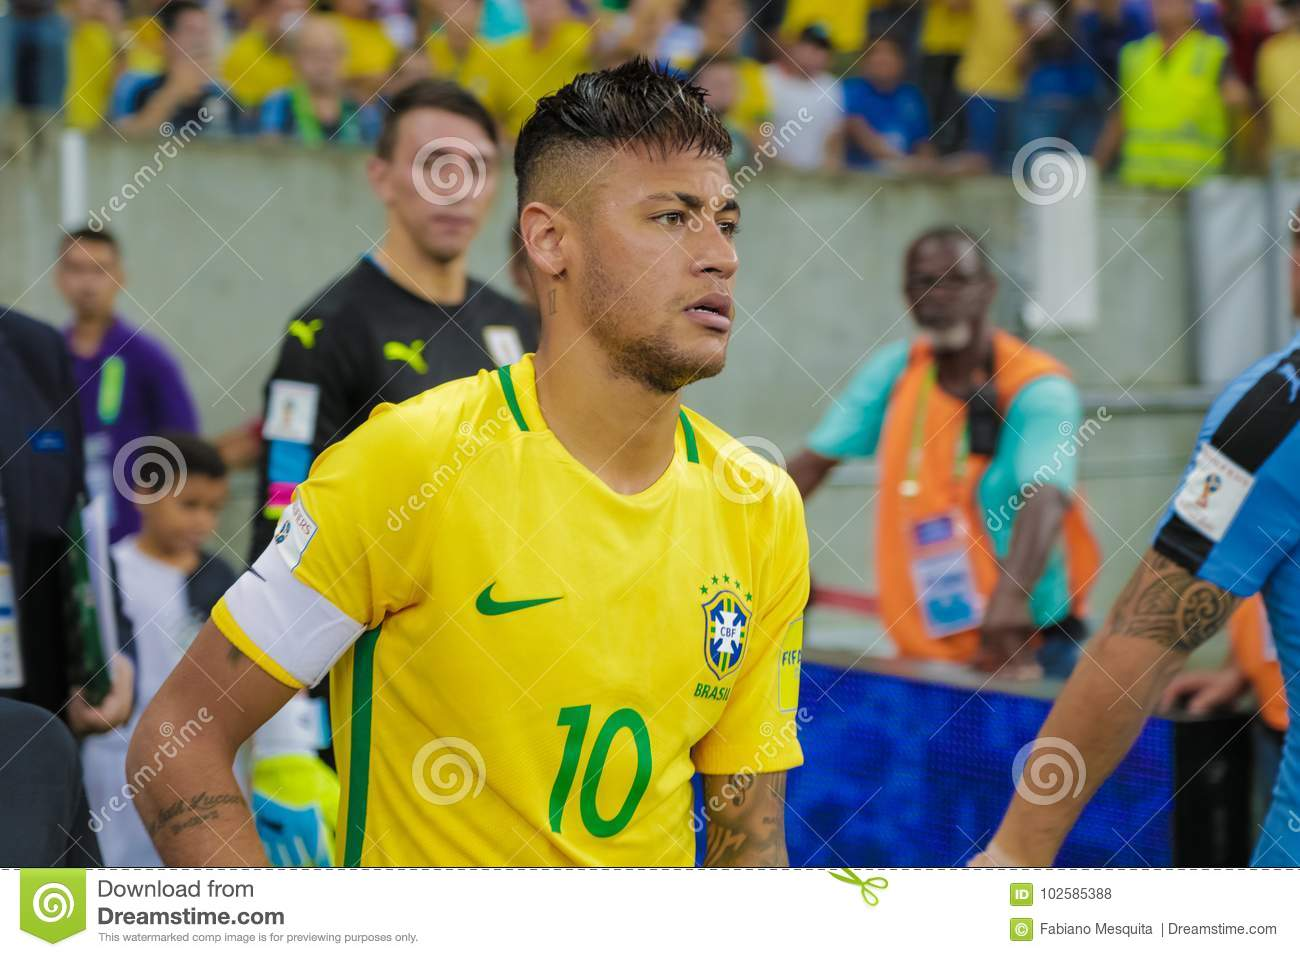 Must see Brazil World Cup 2018 - recife-brazil-march-neymar-jr-some-minutes-match-brazil-uruguay-as-part-fifa-world-cup-qualifiers-arena-102585388  Picture_709119 .jpg